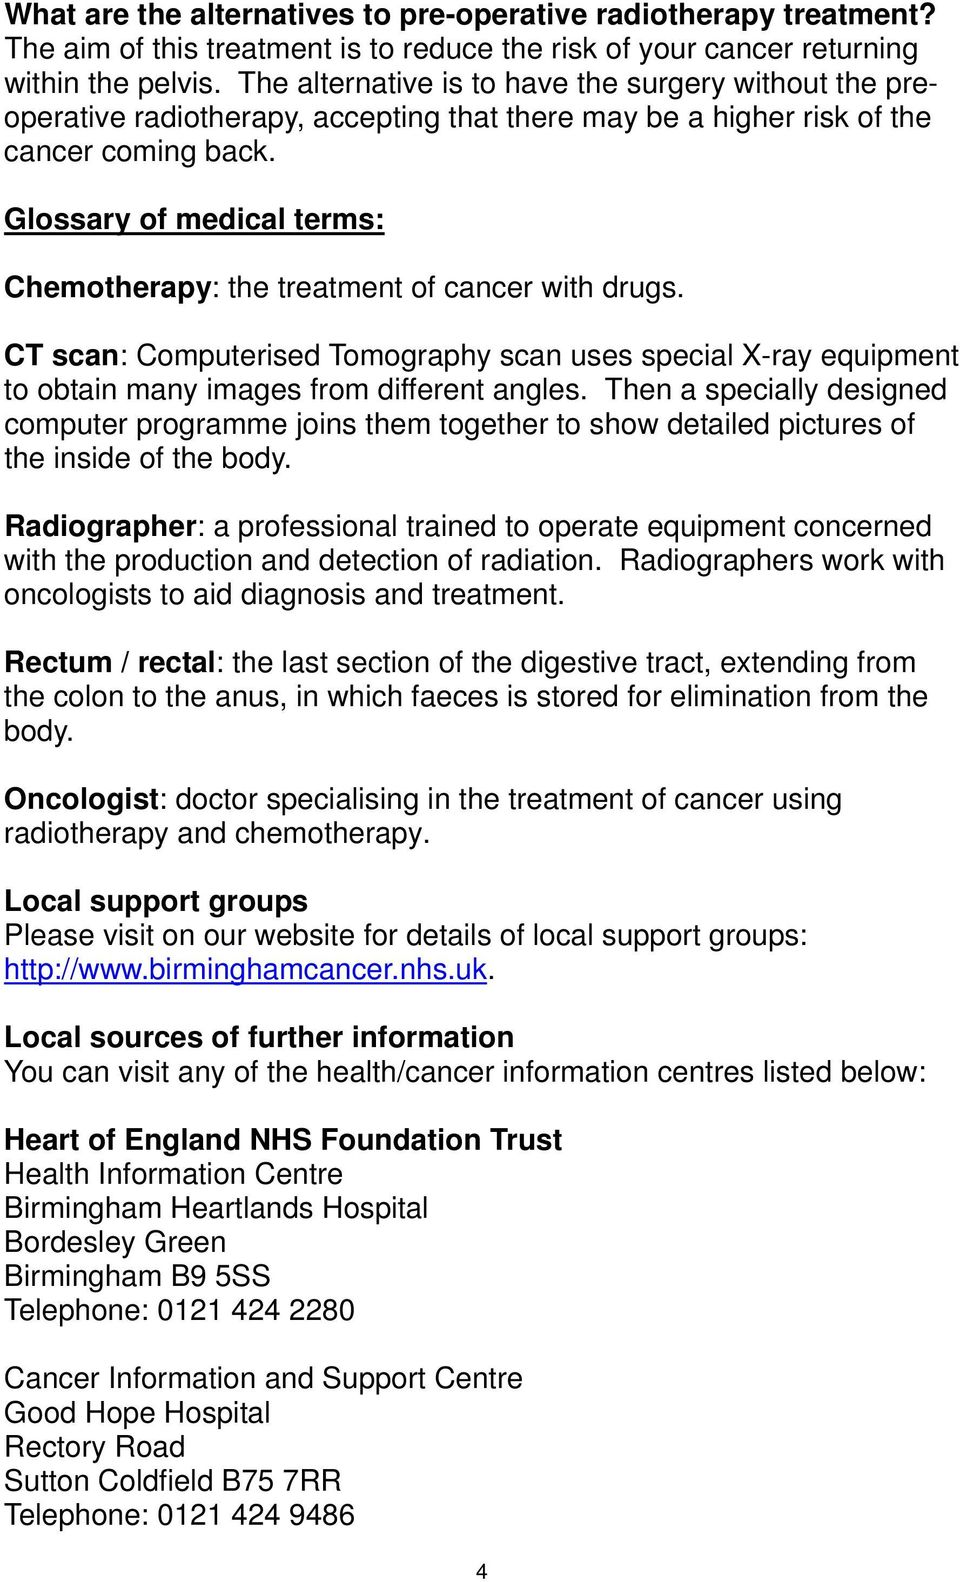 Glossary of medical terms: Chemotherapy: the treatment of cancer with drugs. CT scan: Computerised Tomography scan uses special X-ray equipment to obtain many images from different angles.